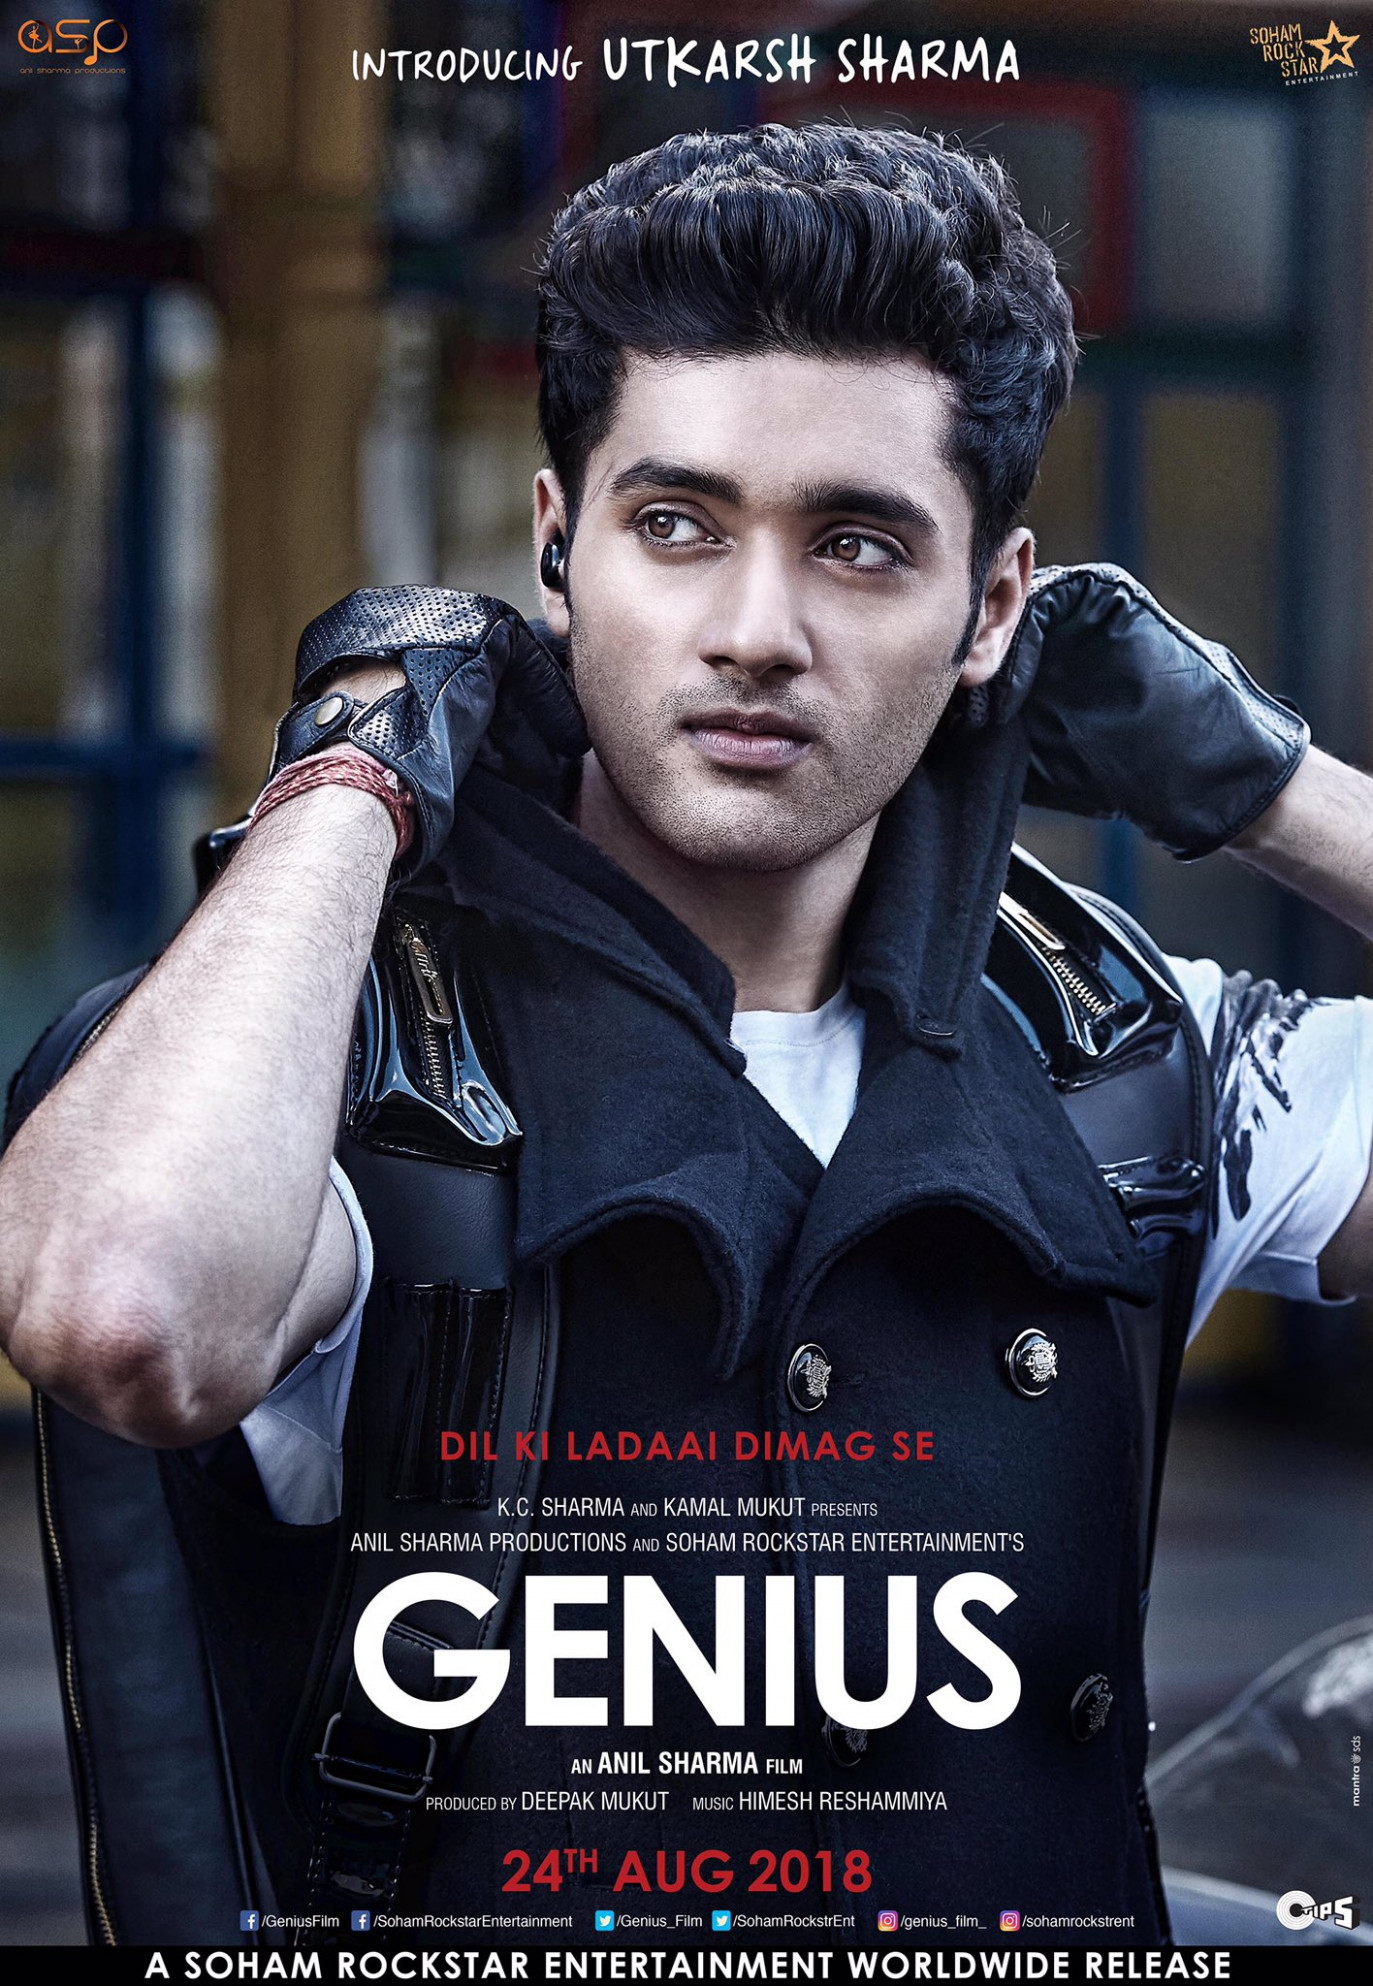 Download Genius (2018) Movie HD Official Poster 3 ...